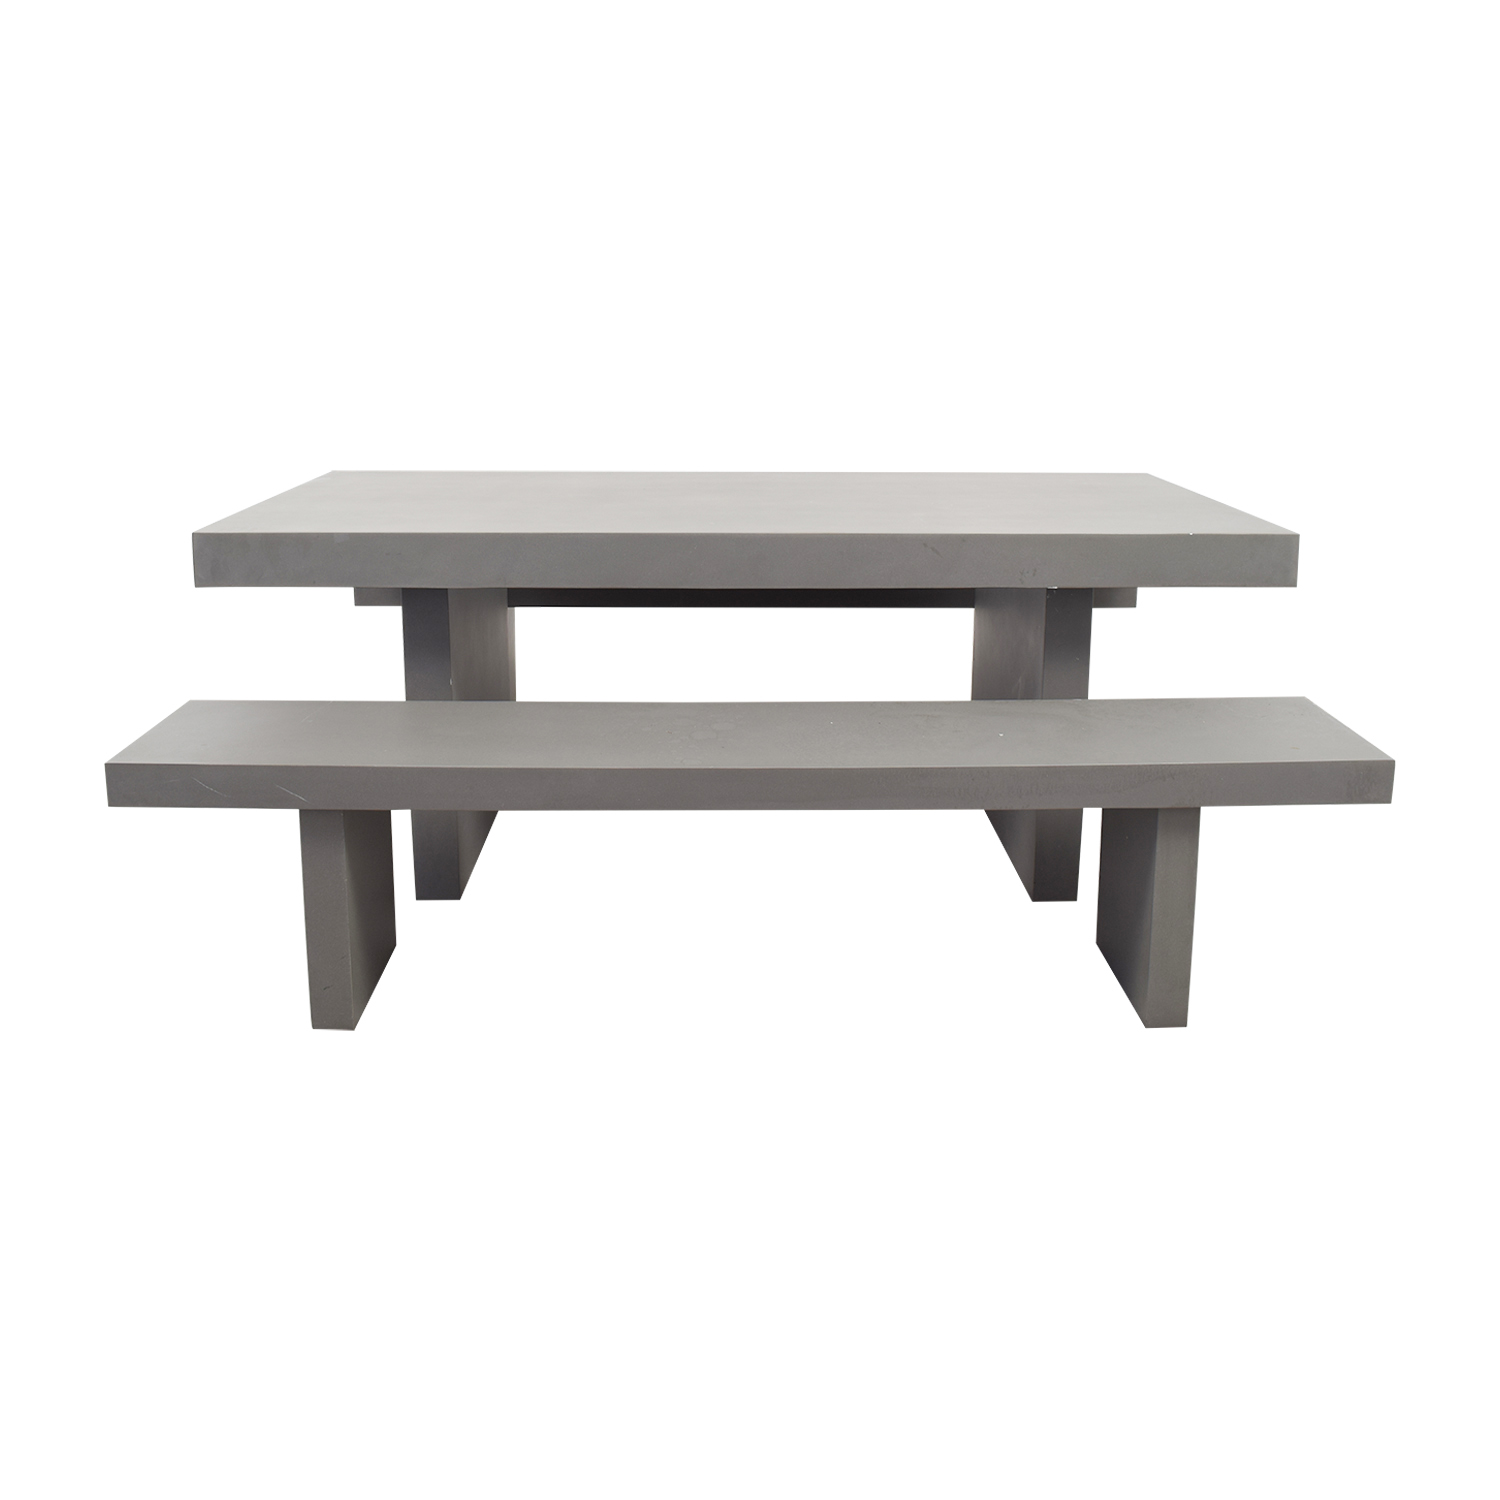 West Elm West Elm Quarry Gray Rectangle Dining Table and Benches on sale